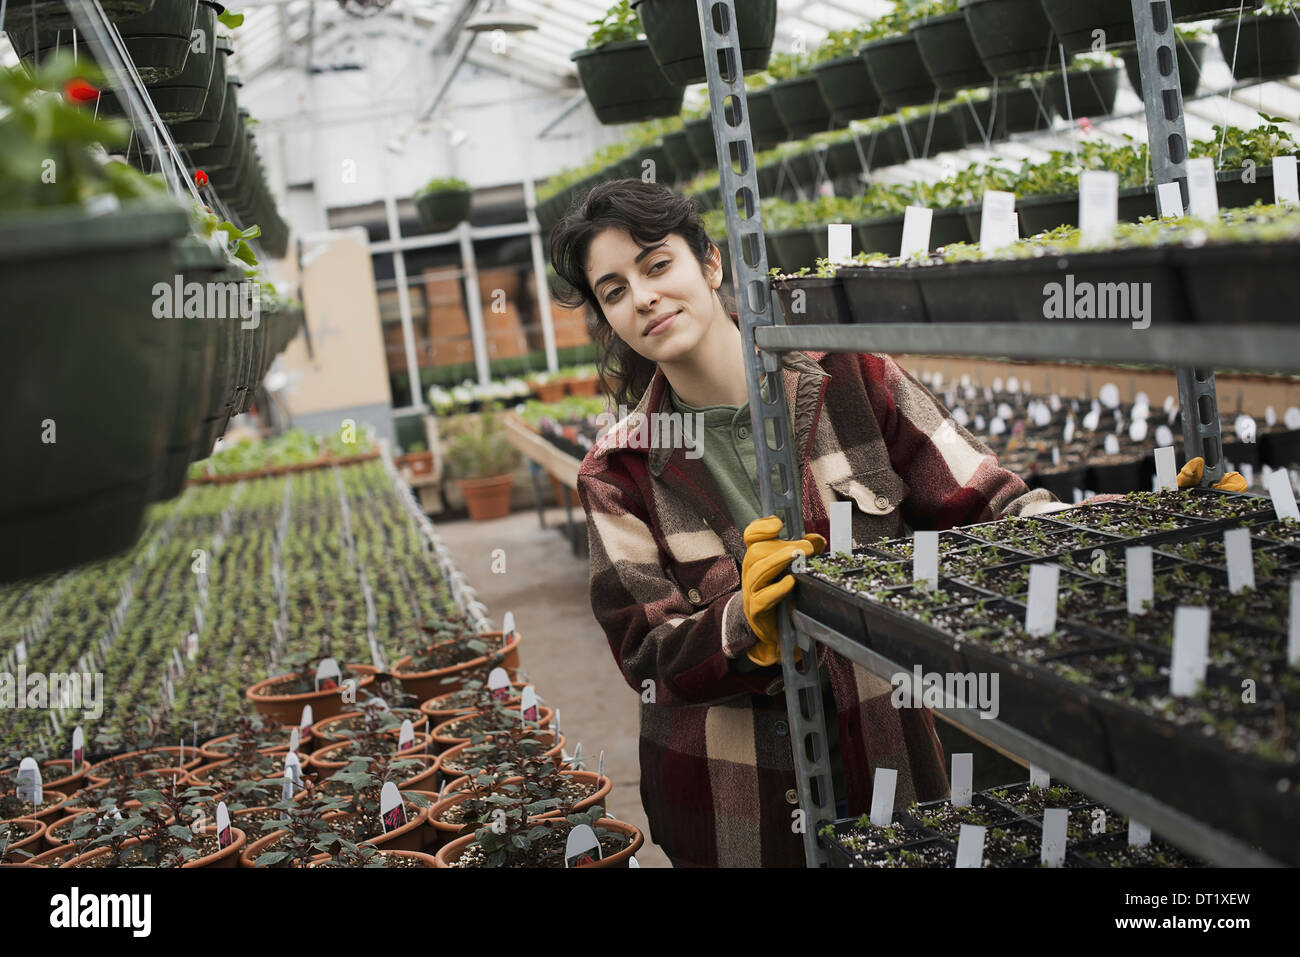 A woman pushing a trolley of seed trays with labels - Stock Image